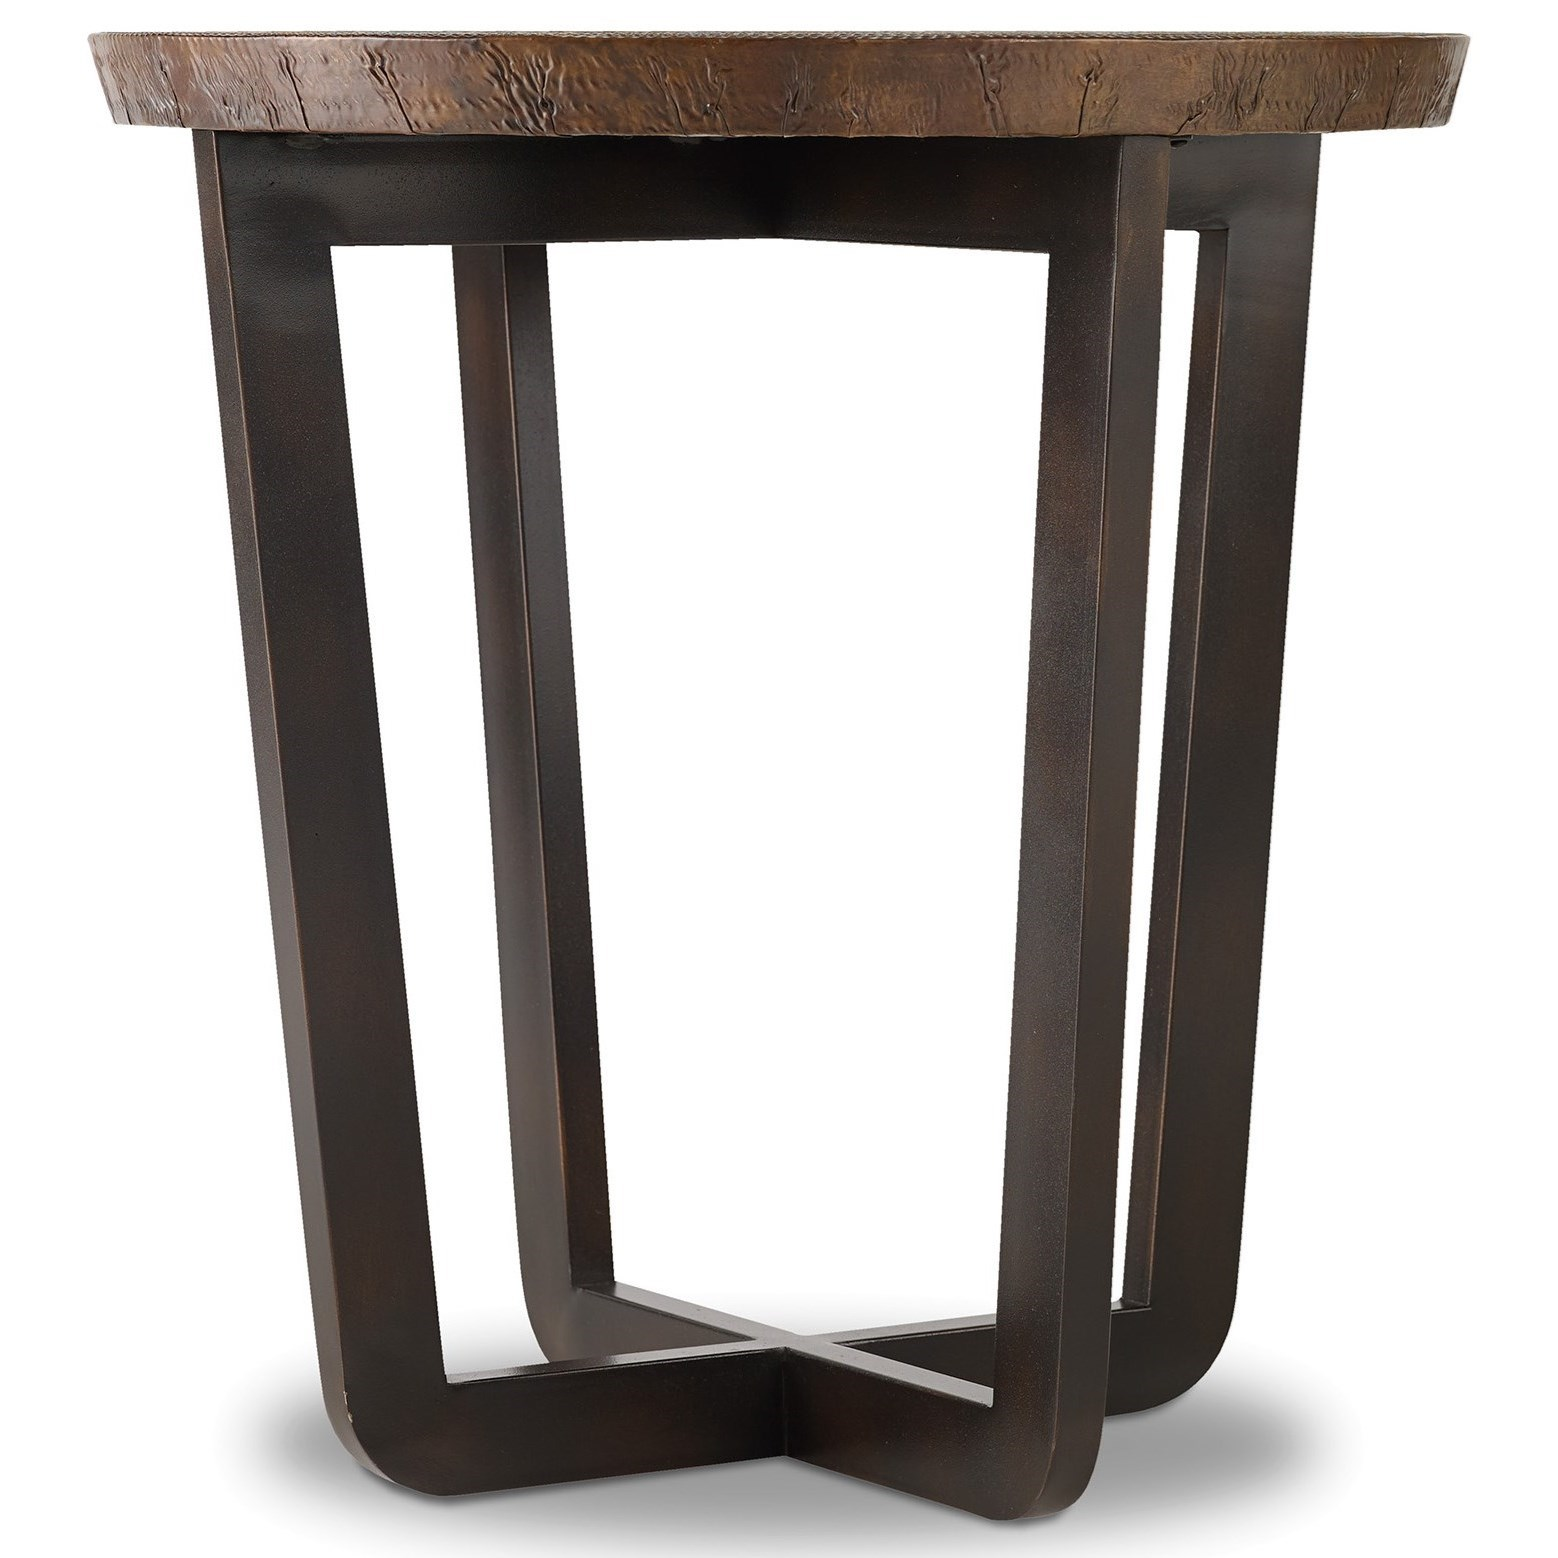 Parkcrest Round End Table by Hooker Furniture at Miller Waldrop Furniture and Decor